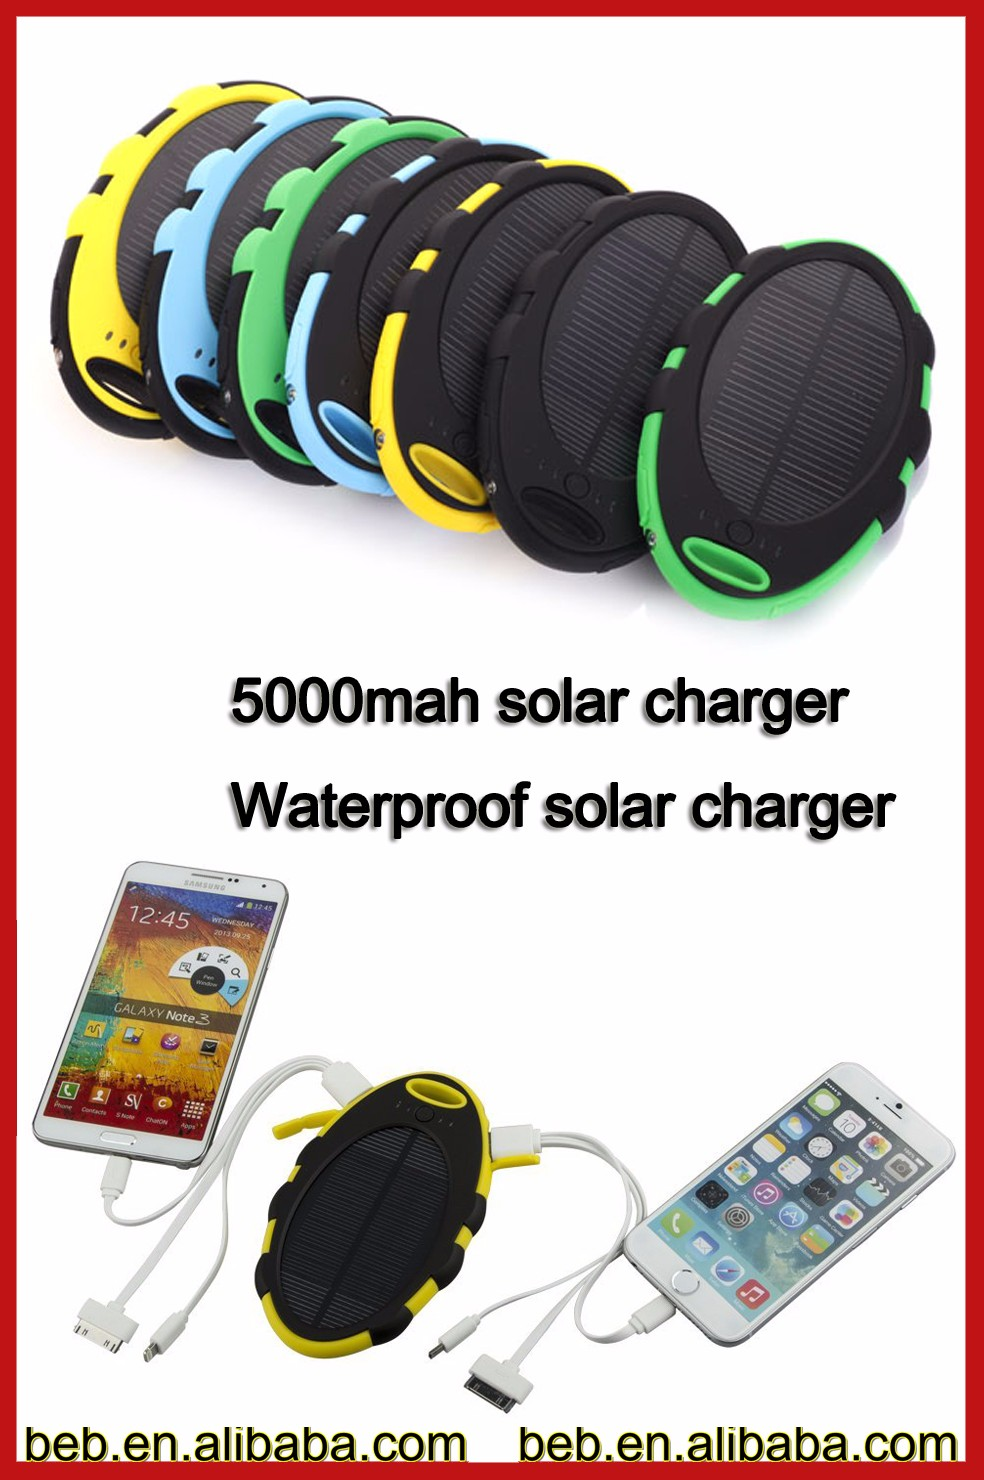 Hotsale Waterproof Dual USB Mobile Portable Power Bank 5000mah Mobile Solar Charger